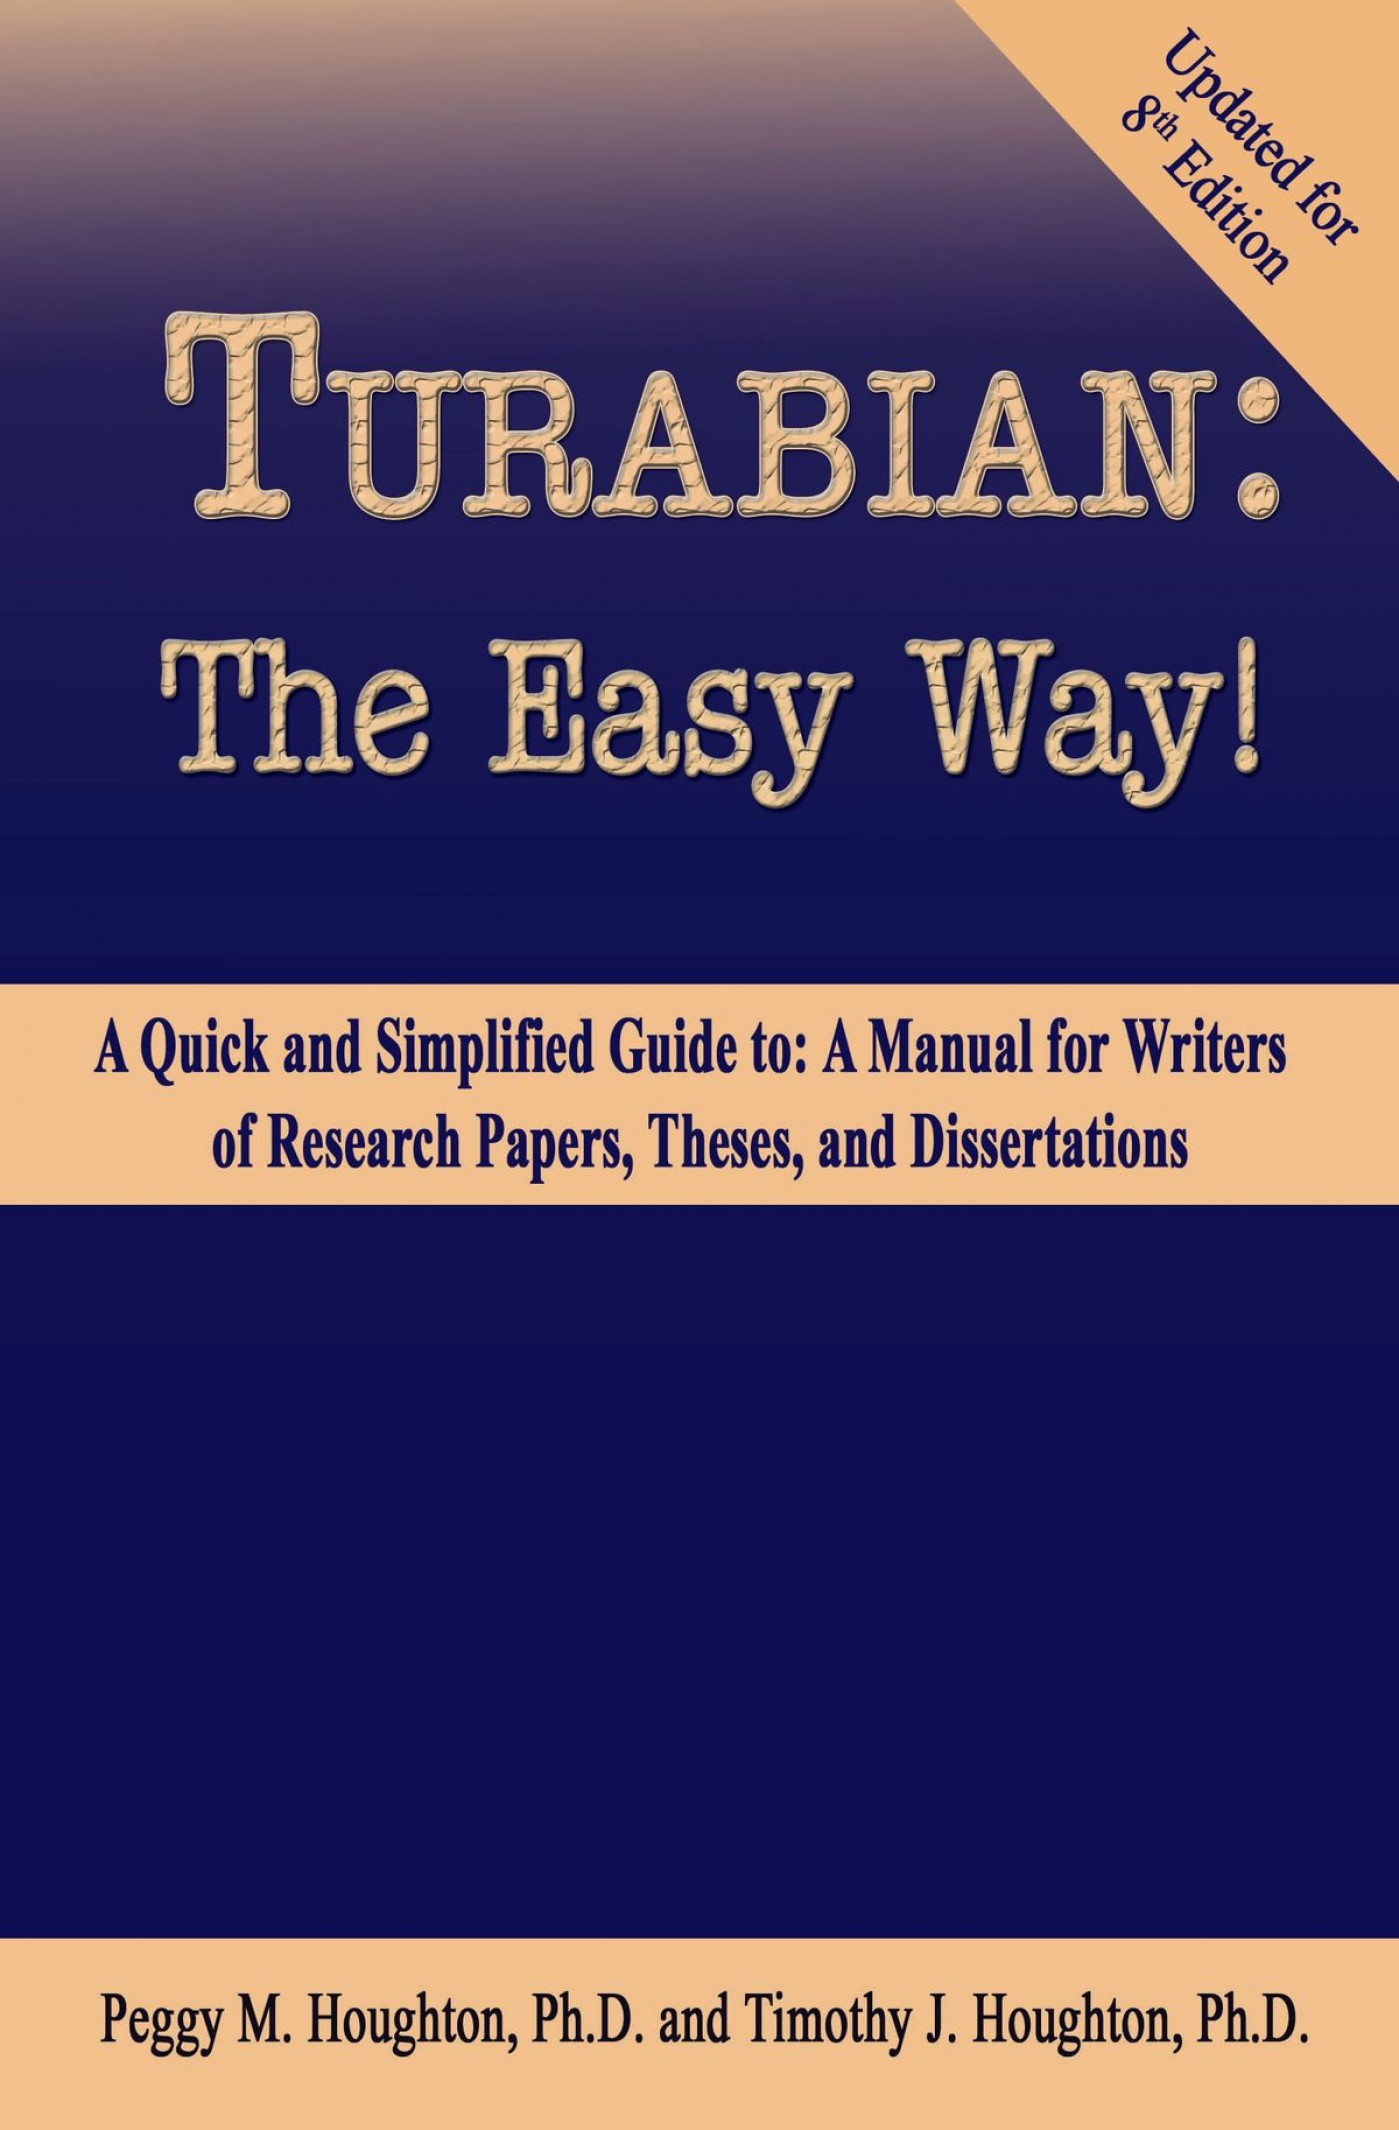 018 Research Paper Turabian The Easy Way For 8th Edition Manual Writers Of Papers Theses And Amazing A Dissertations Pdf 1400